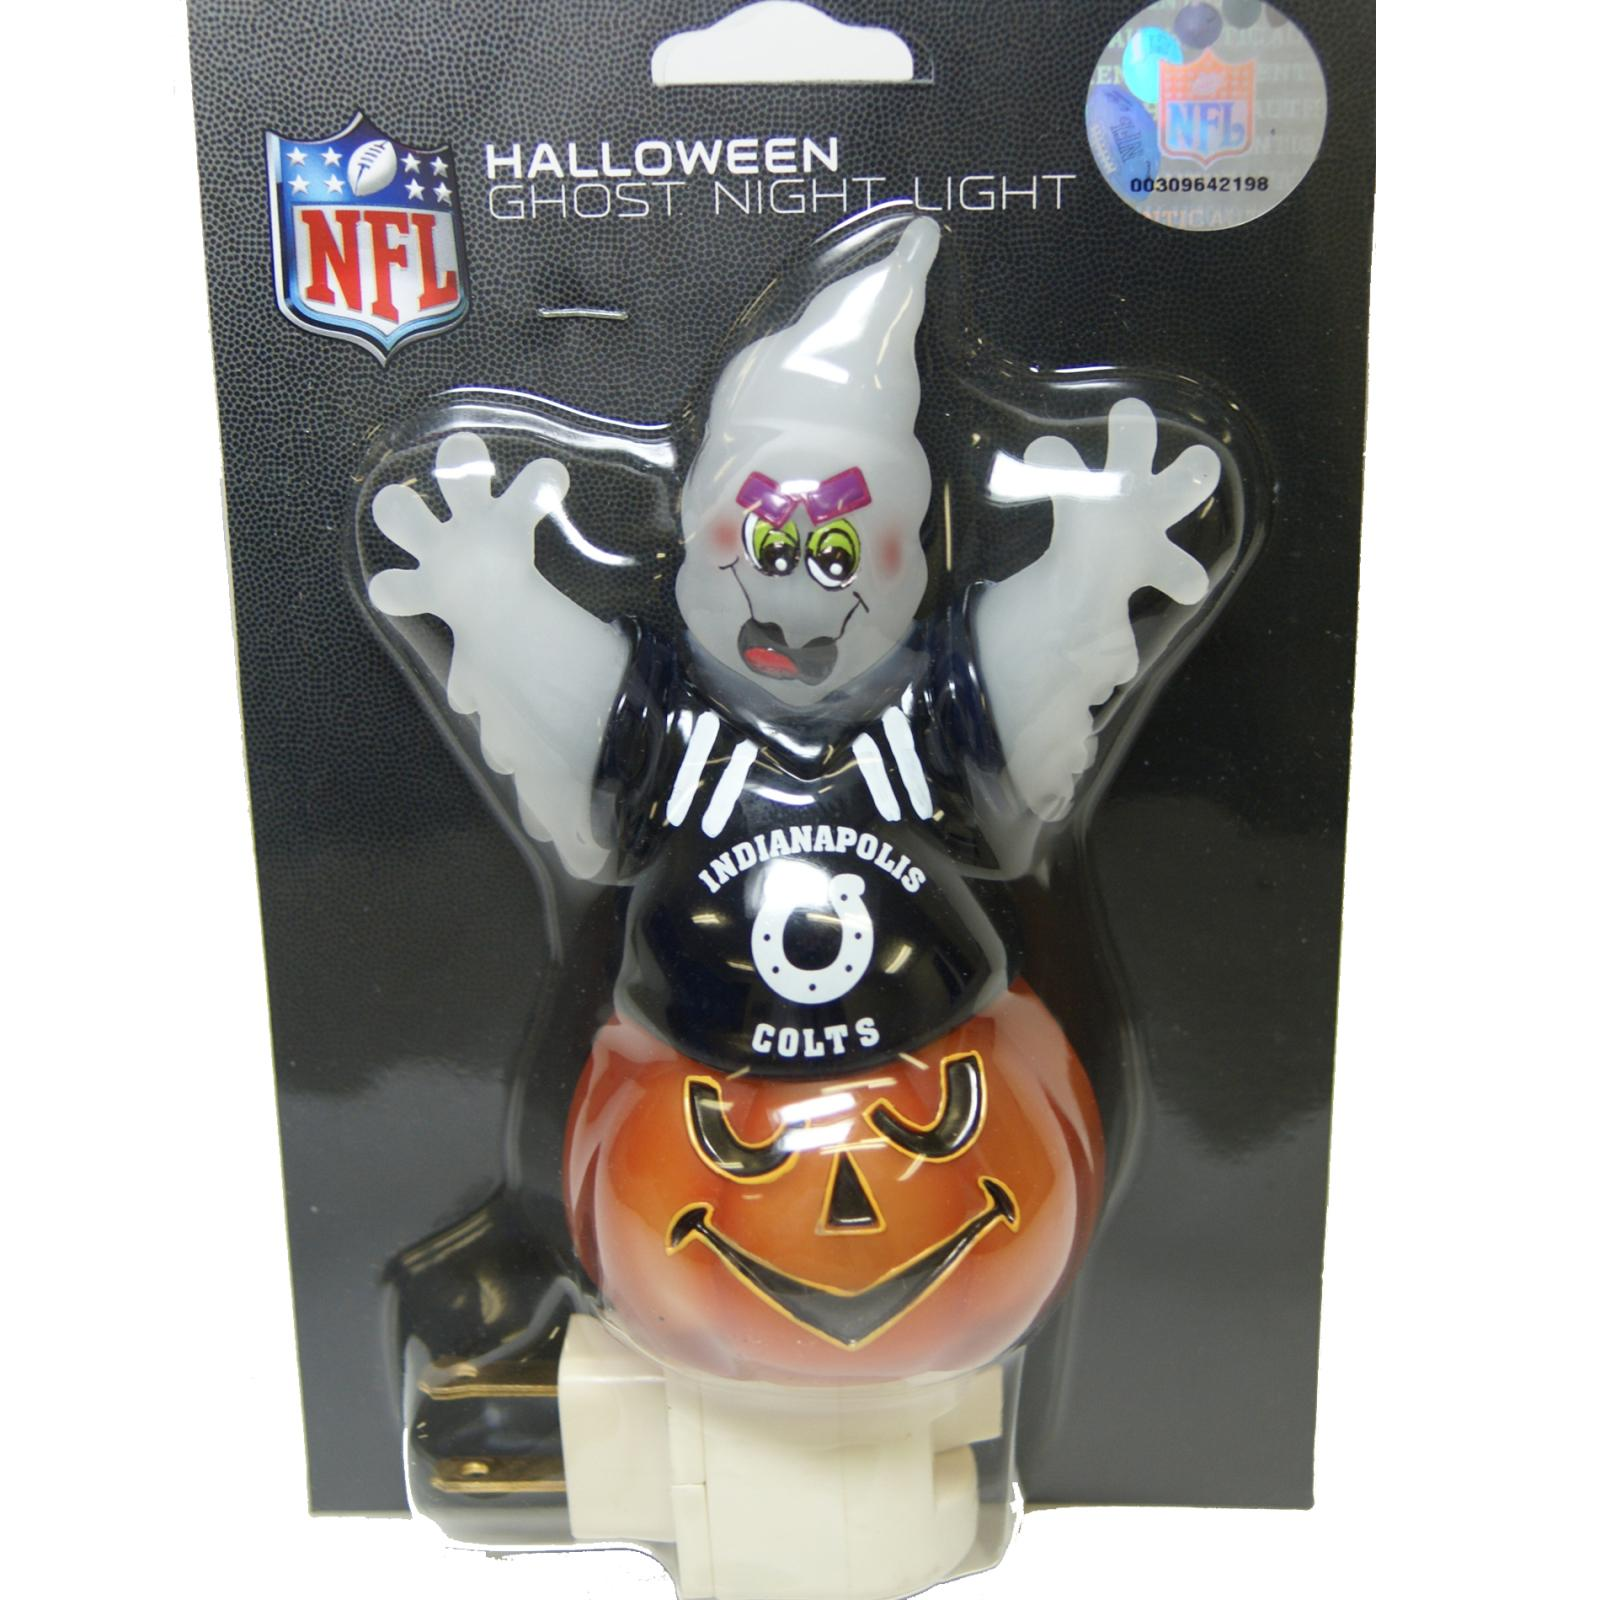 Indianapolis Colts Halloween Ghost Night Light - Thumbnail 0